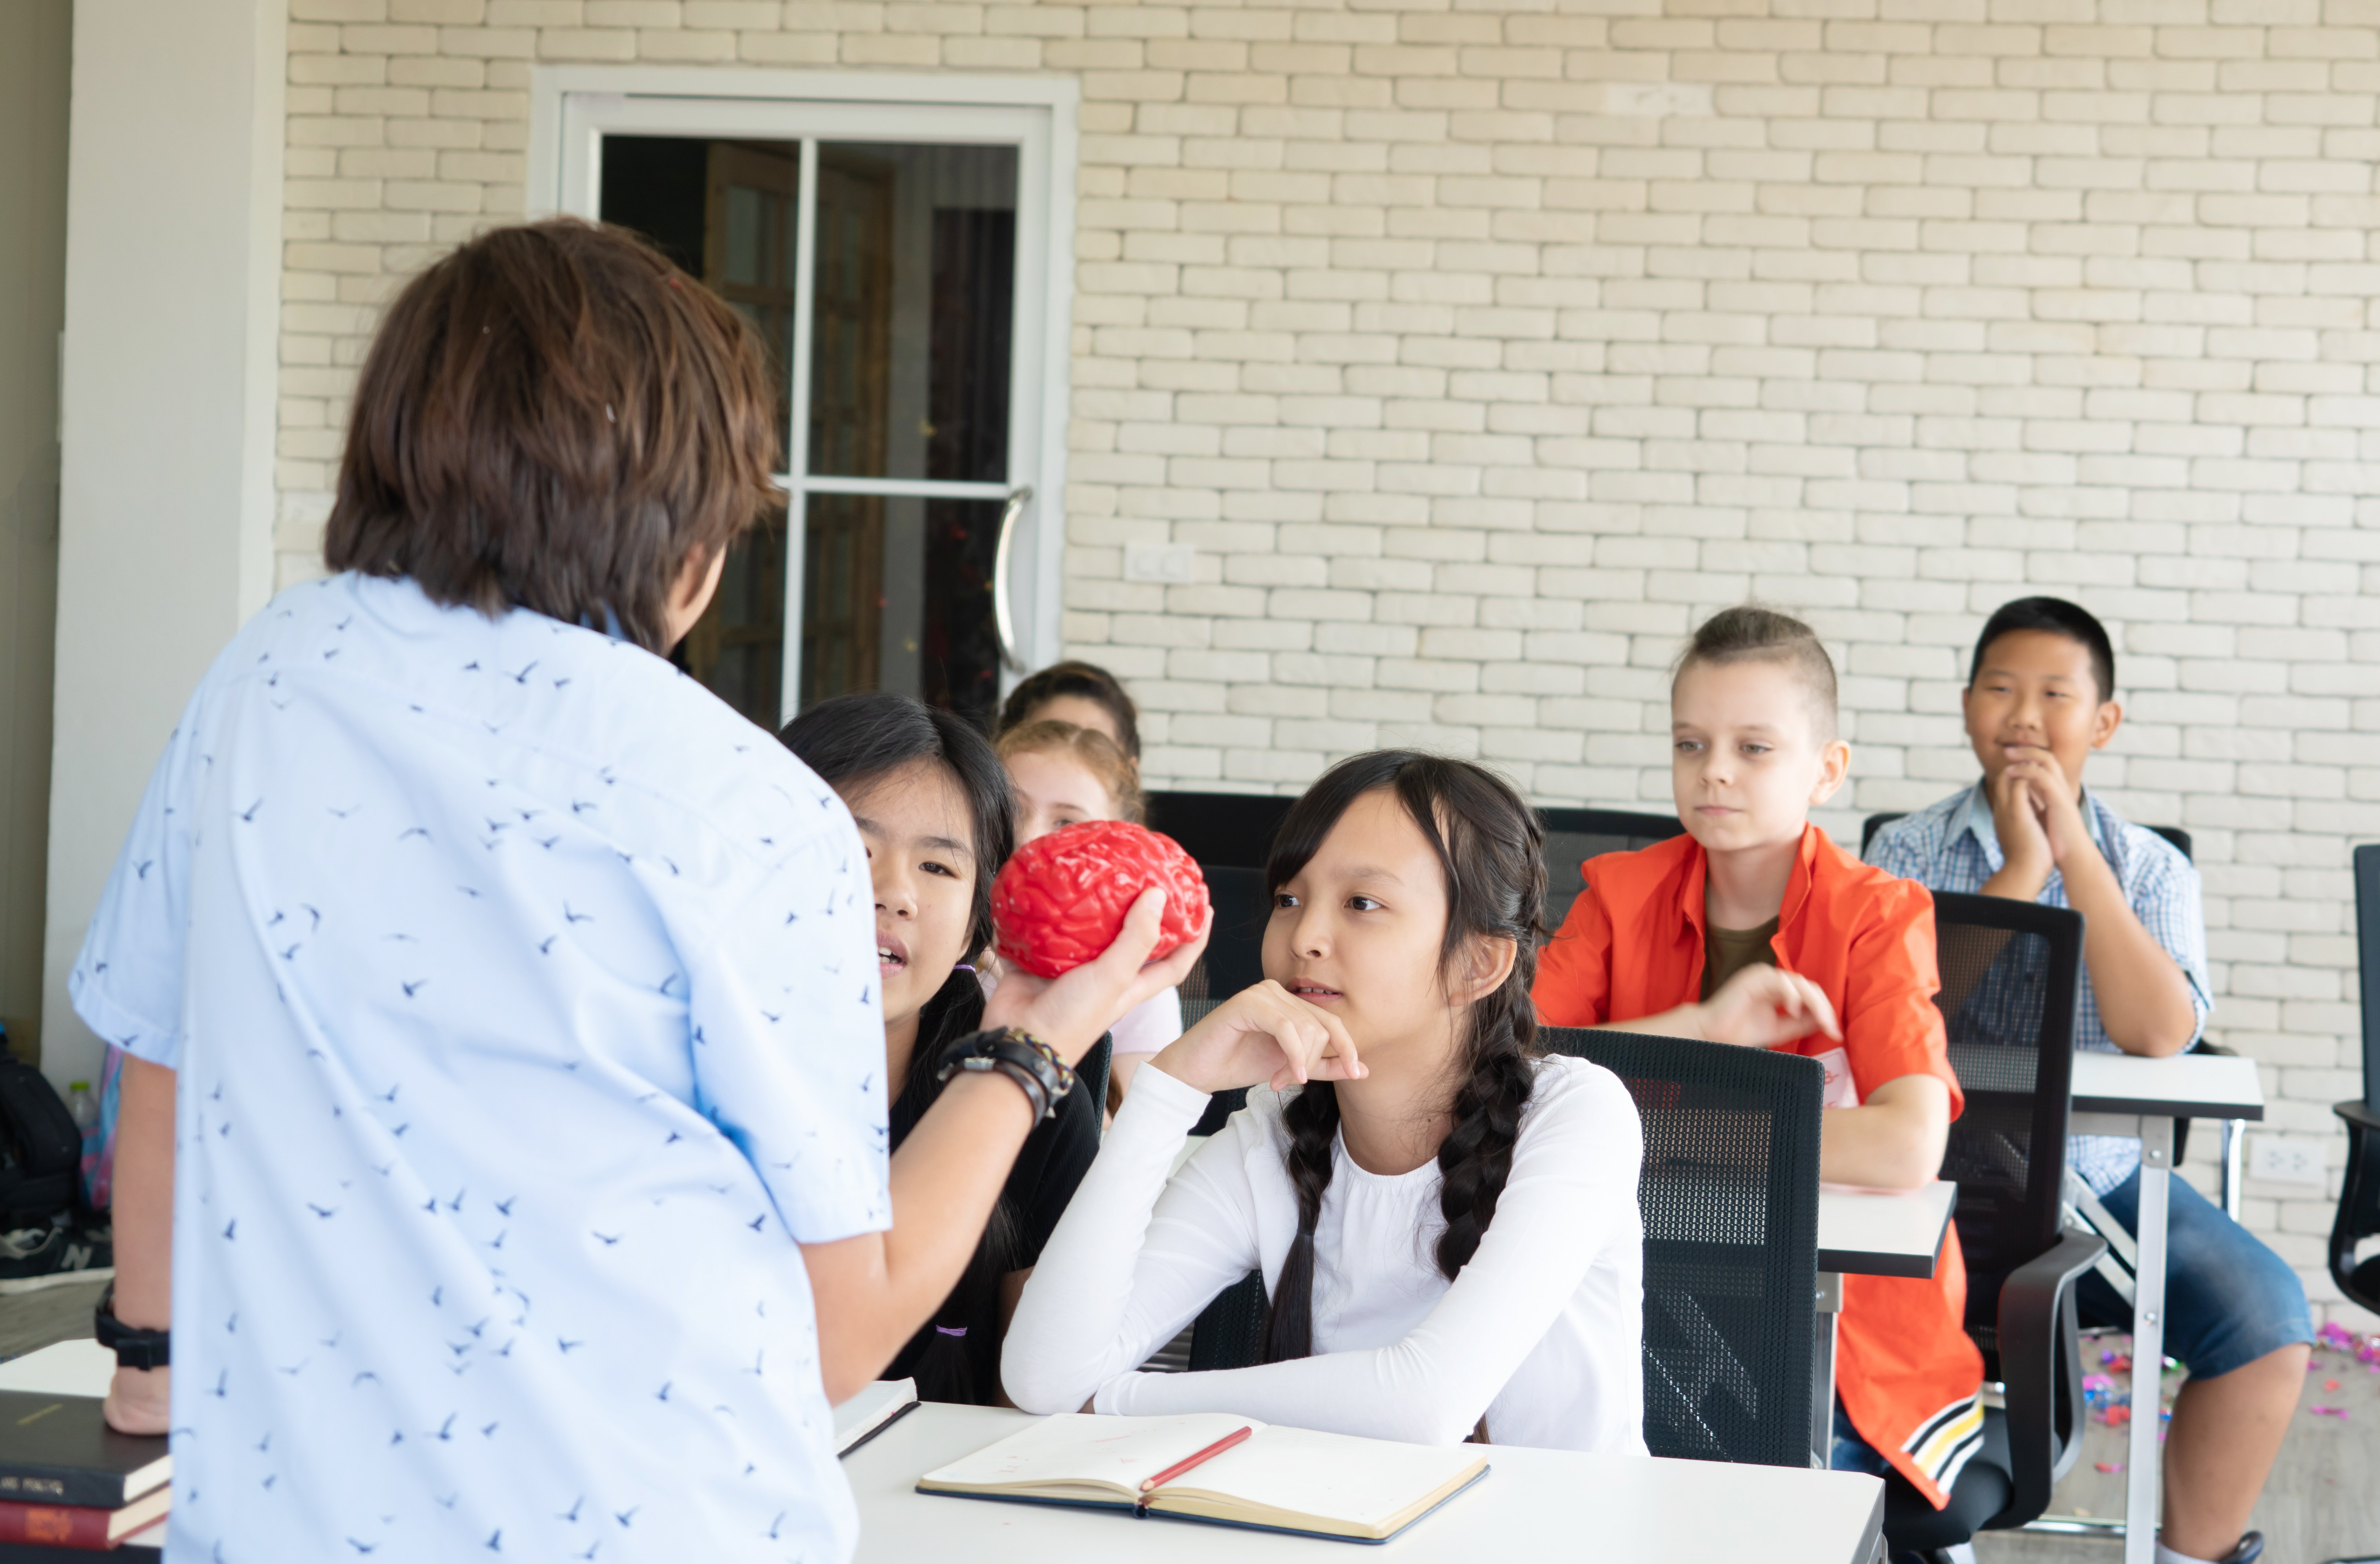 A boy presents himself in front of the classroom, in a primary school   Photo: Shutterstock